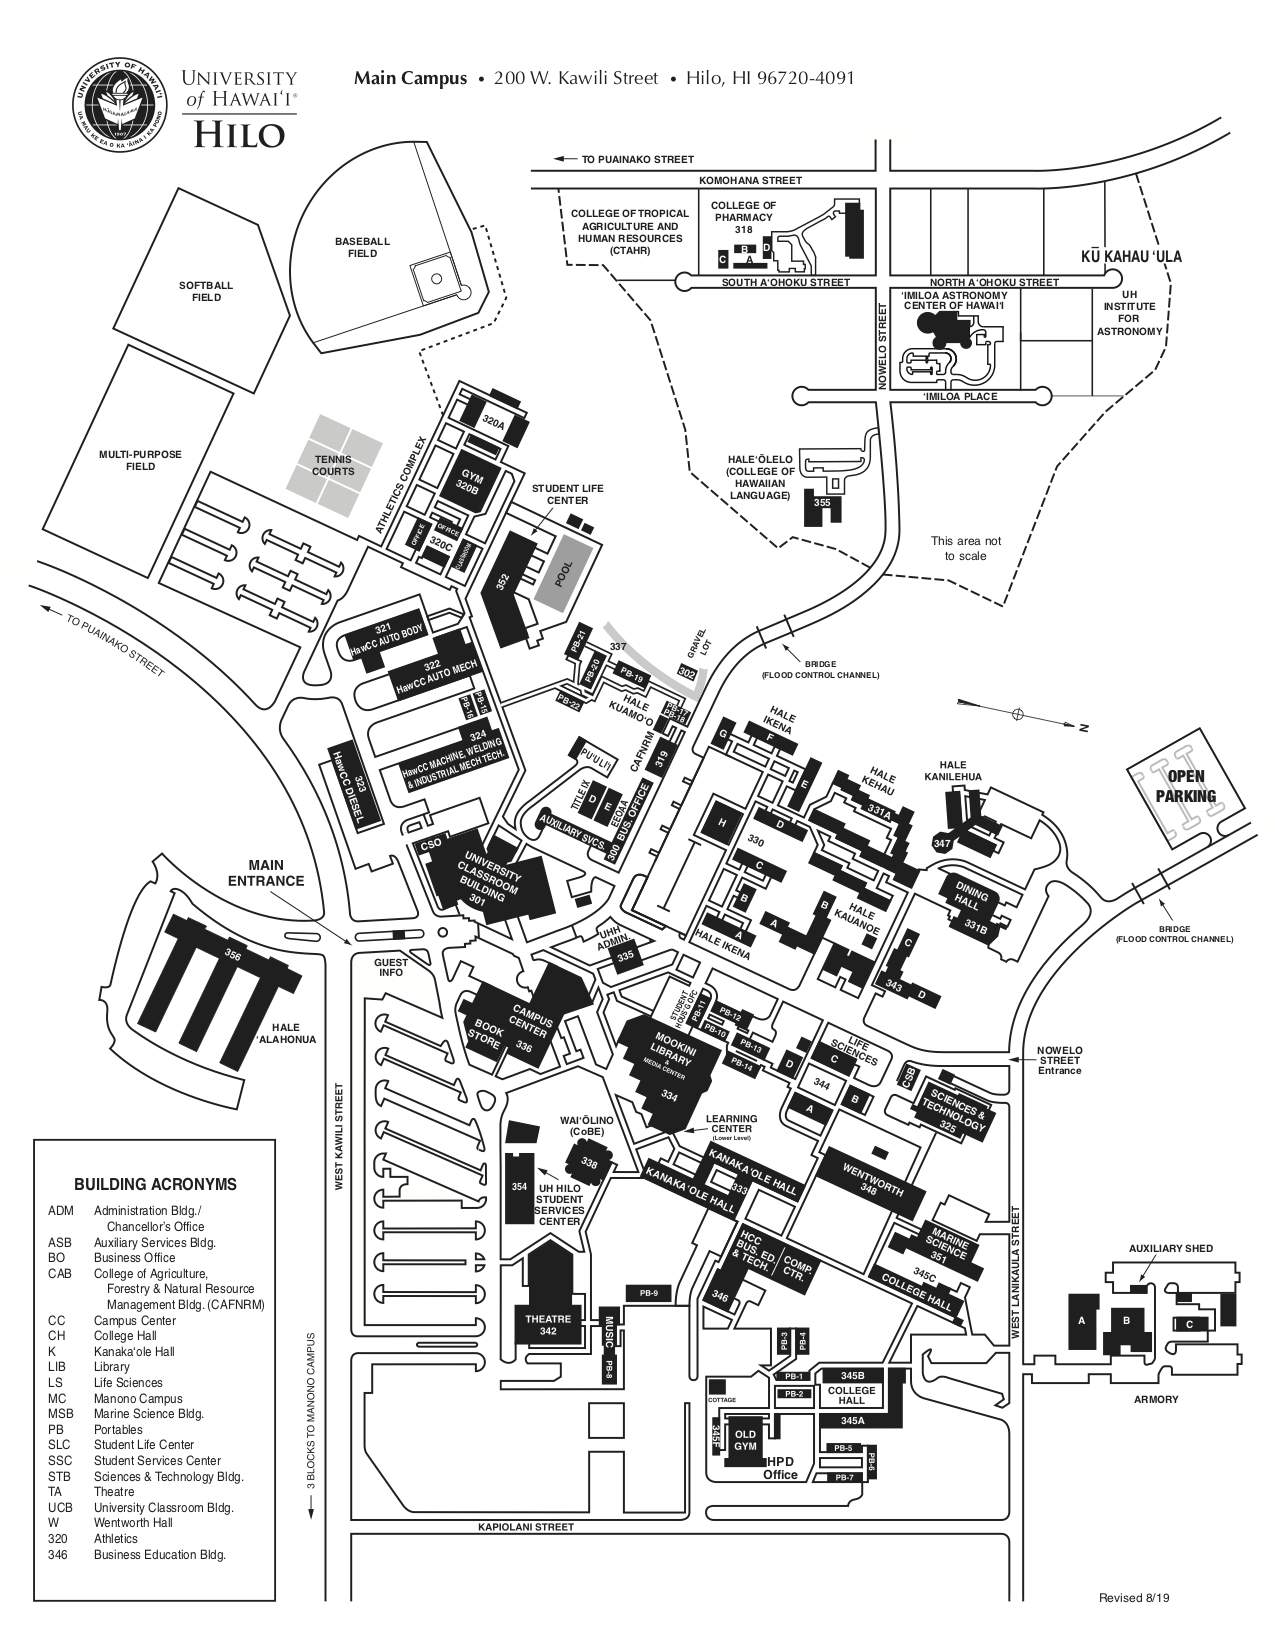 Campus Maps on